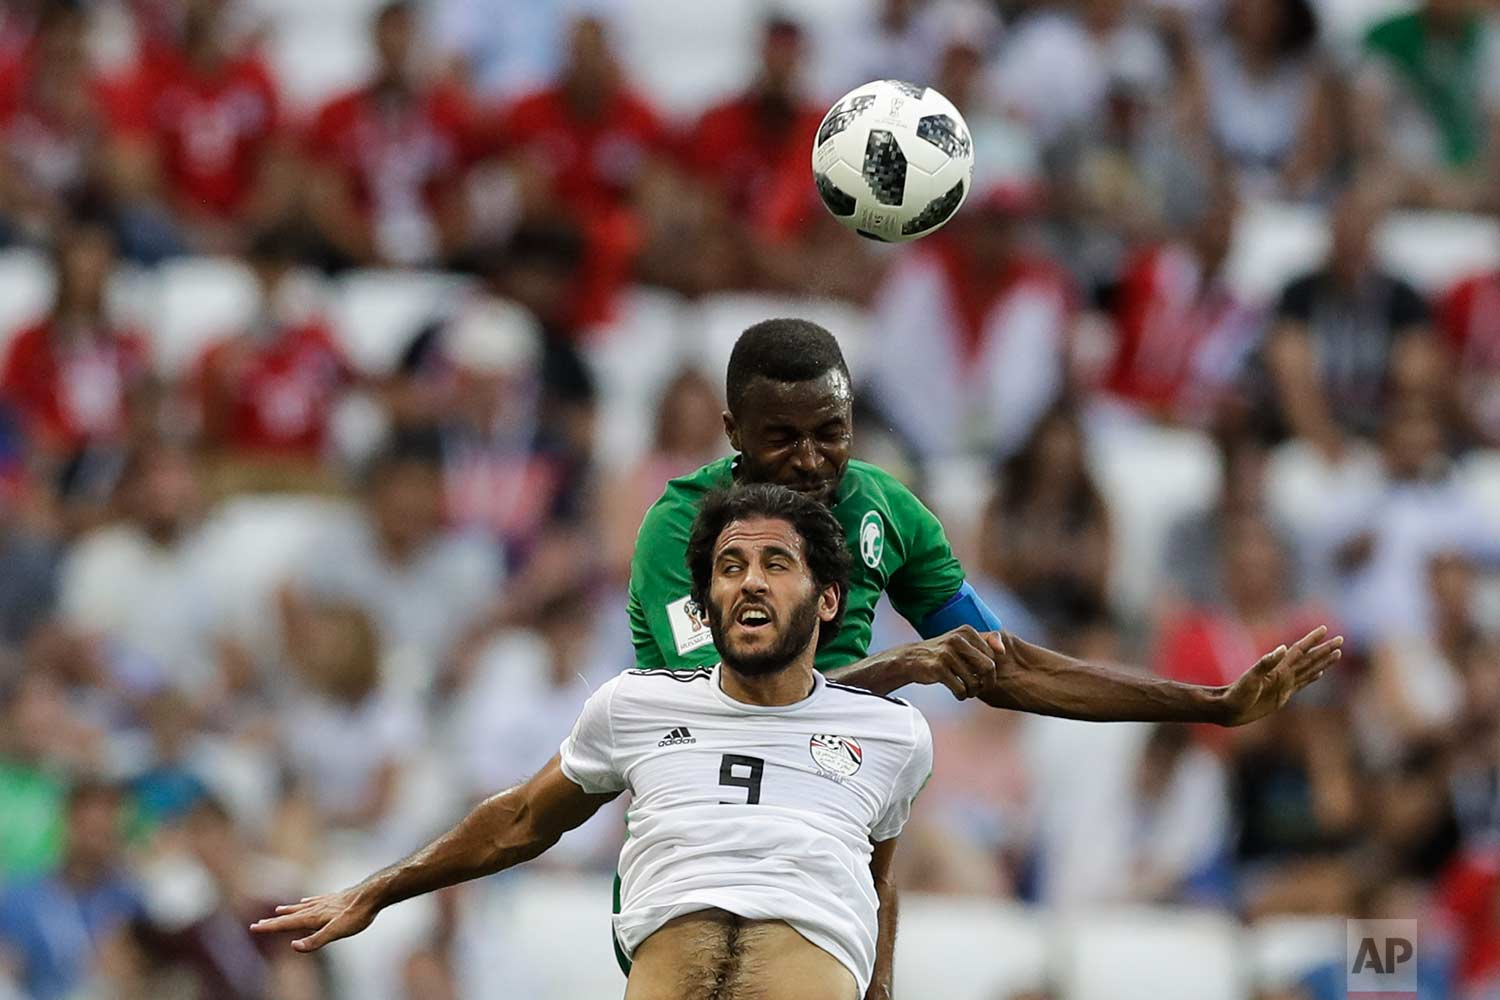 Egypt's Marwan Mohsen, front, and Saudi Arabia's Osama Hawsawi jump for the ball during the group A match between Saudi Arabia and Egypt at the 2018 soccer World Cup at the Volgograd Arena in Volgograd, Russia, Monday, June 25, 2018. (AP Photo/Andrew Medichini)